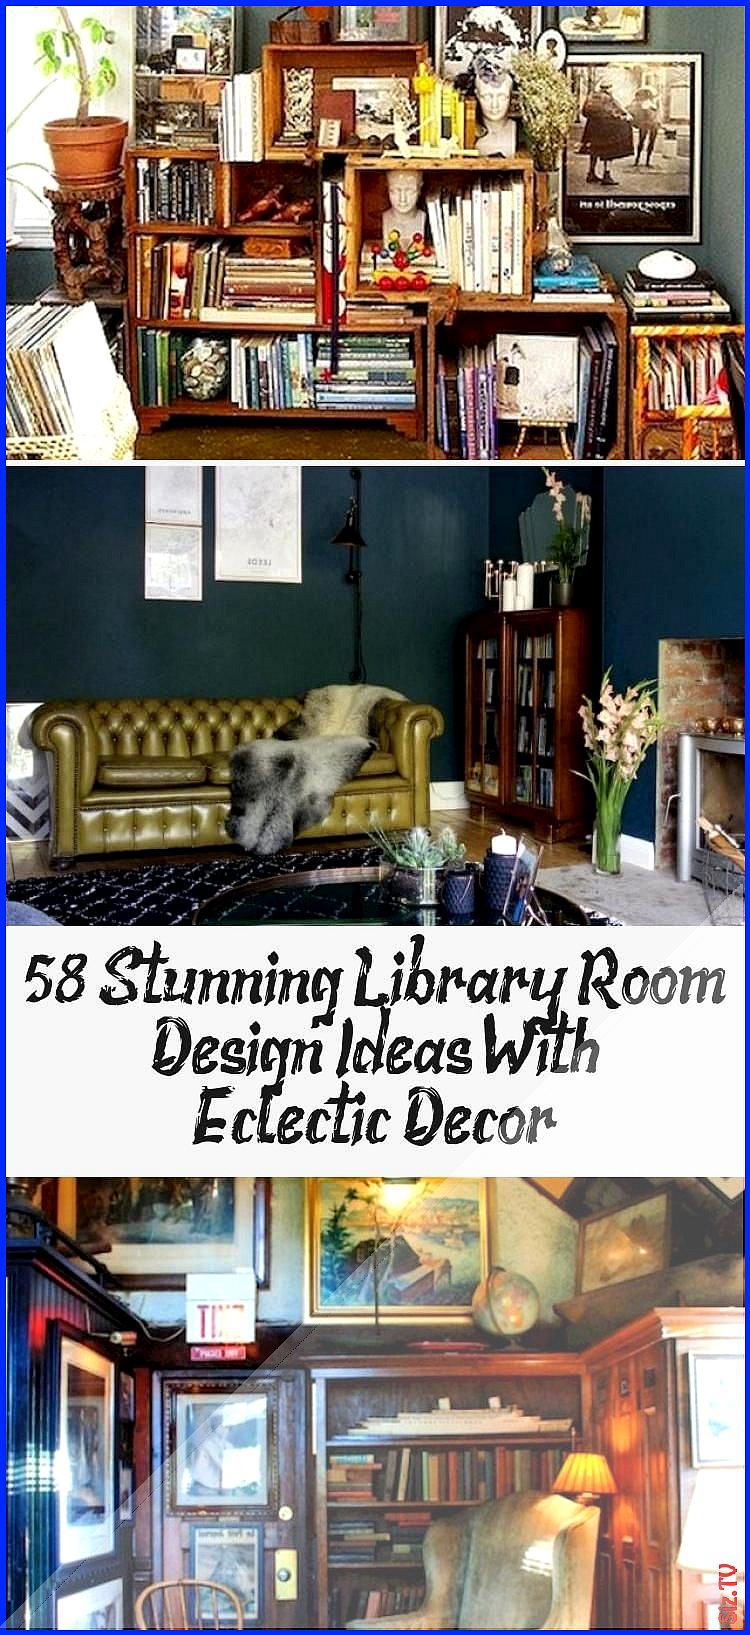 58 Stunning Library Room Design Ideas With Eclectic Decor 58 Stunning Library Room Design Ideas With Eclectic Decor Kelly Seay Kelly Seay 58 Stunning Library Room Design...